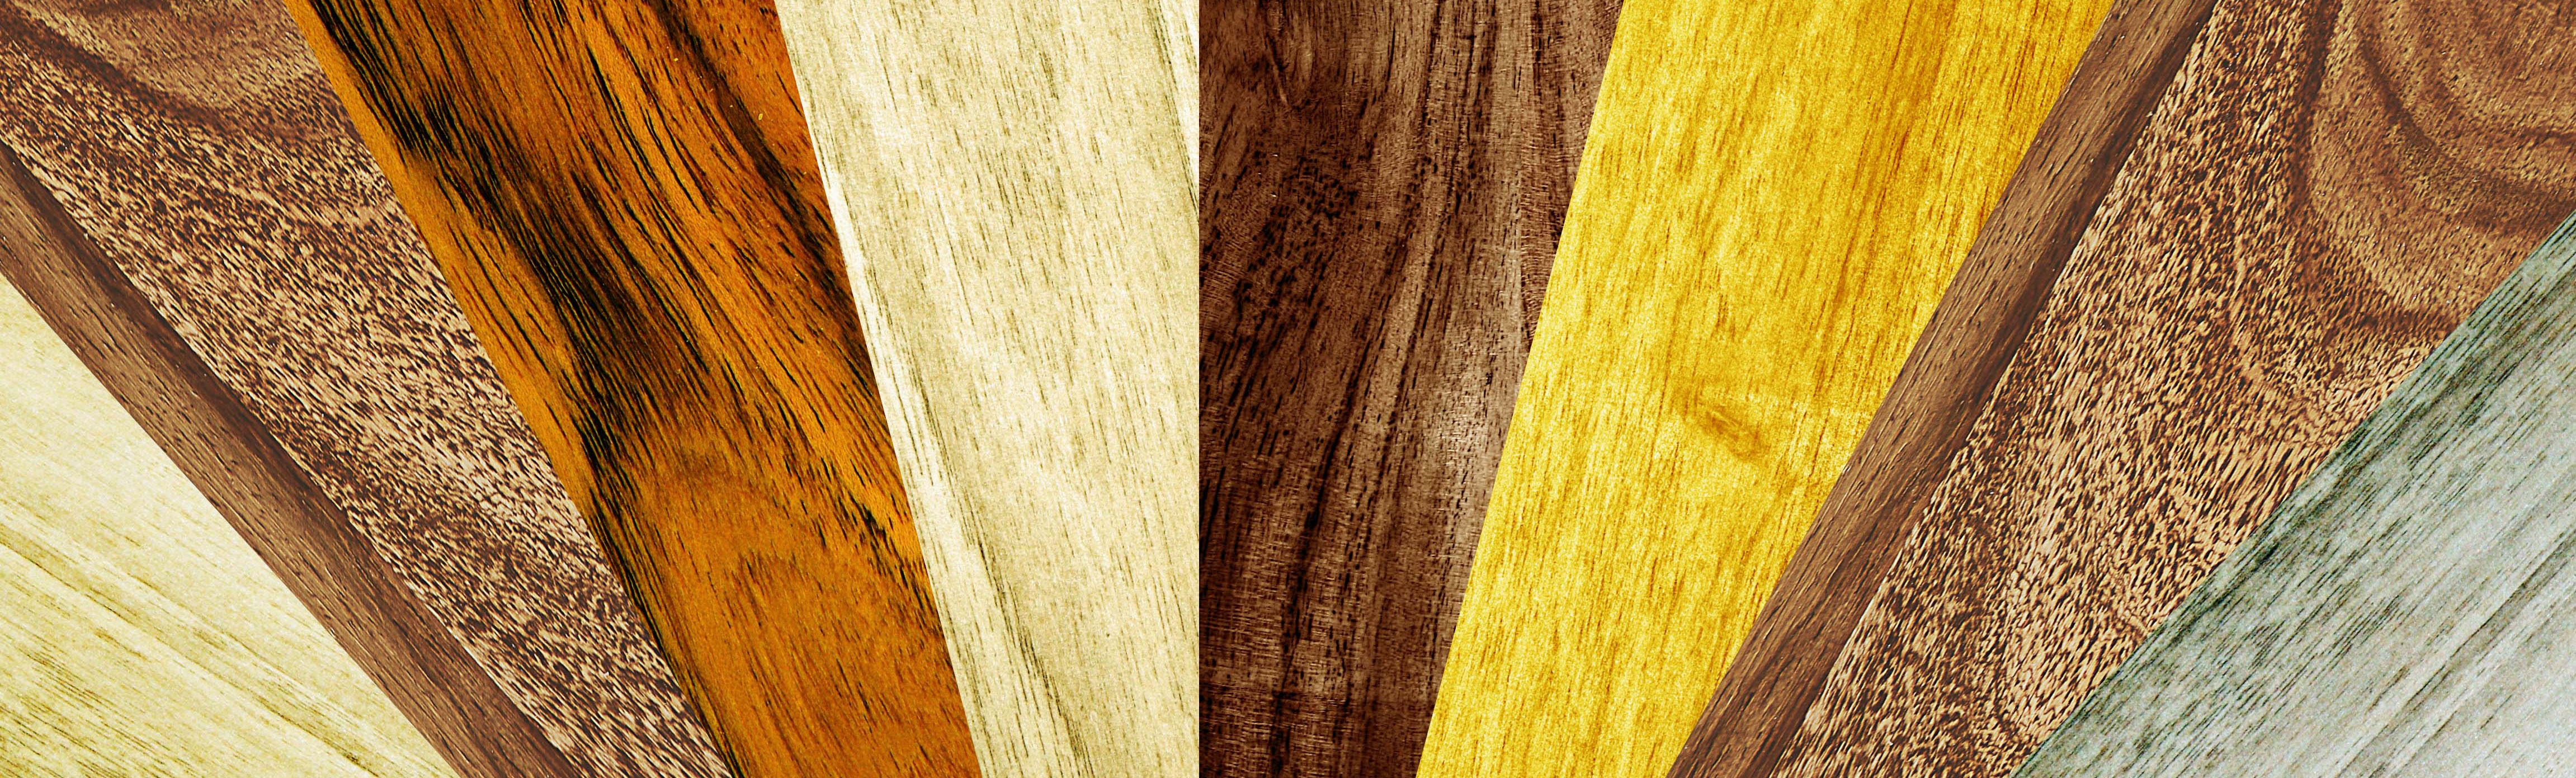 High-Performance Resins for Industrial Wood - EPS® 2400 Series